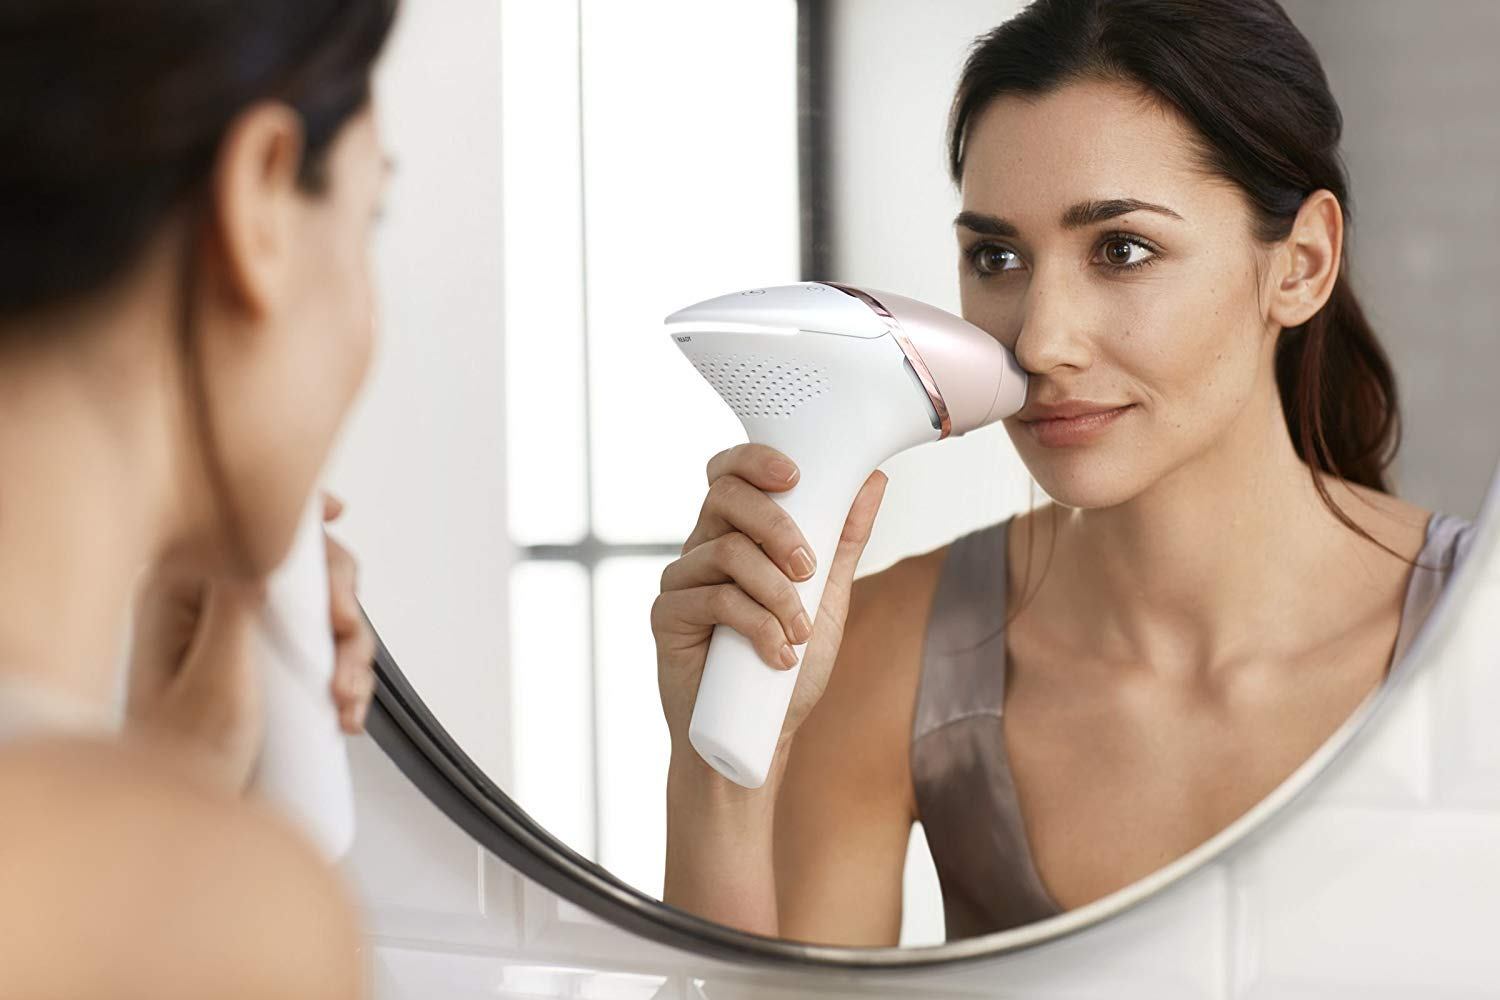 Philips Lumea BRI950 Prestige IPL Hair Removal Device - Philips - Pazarska